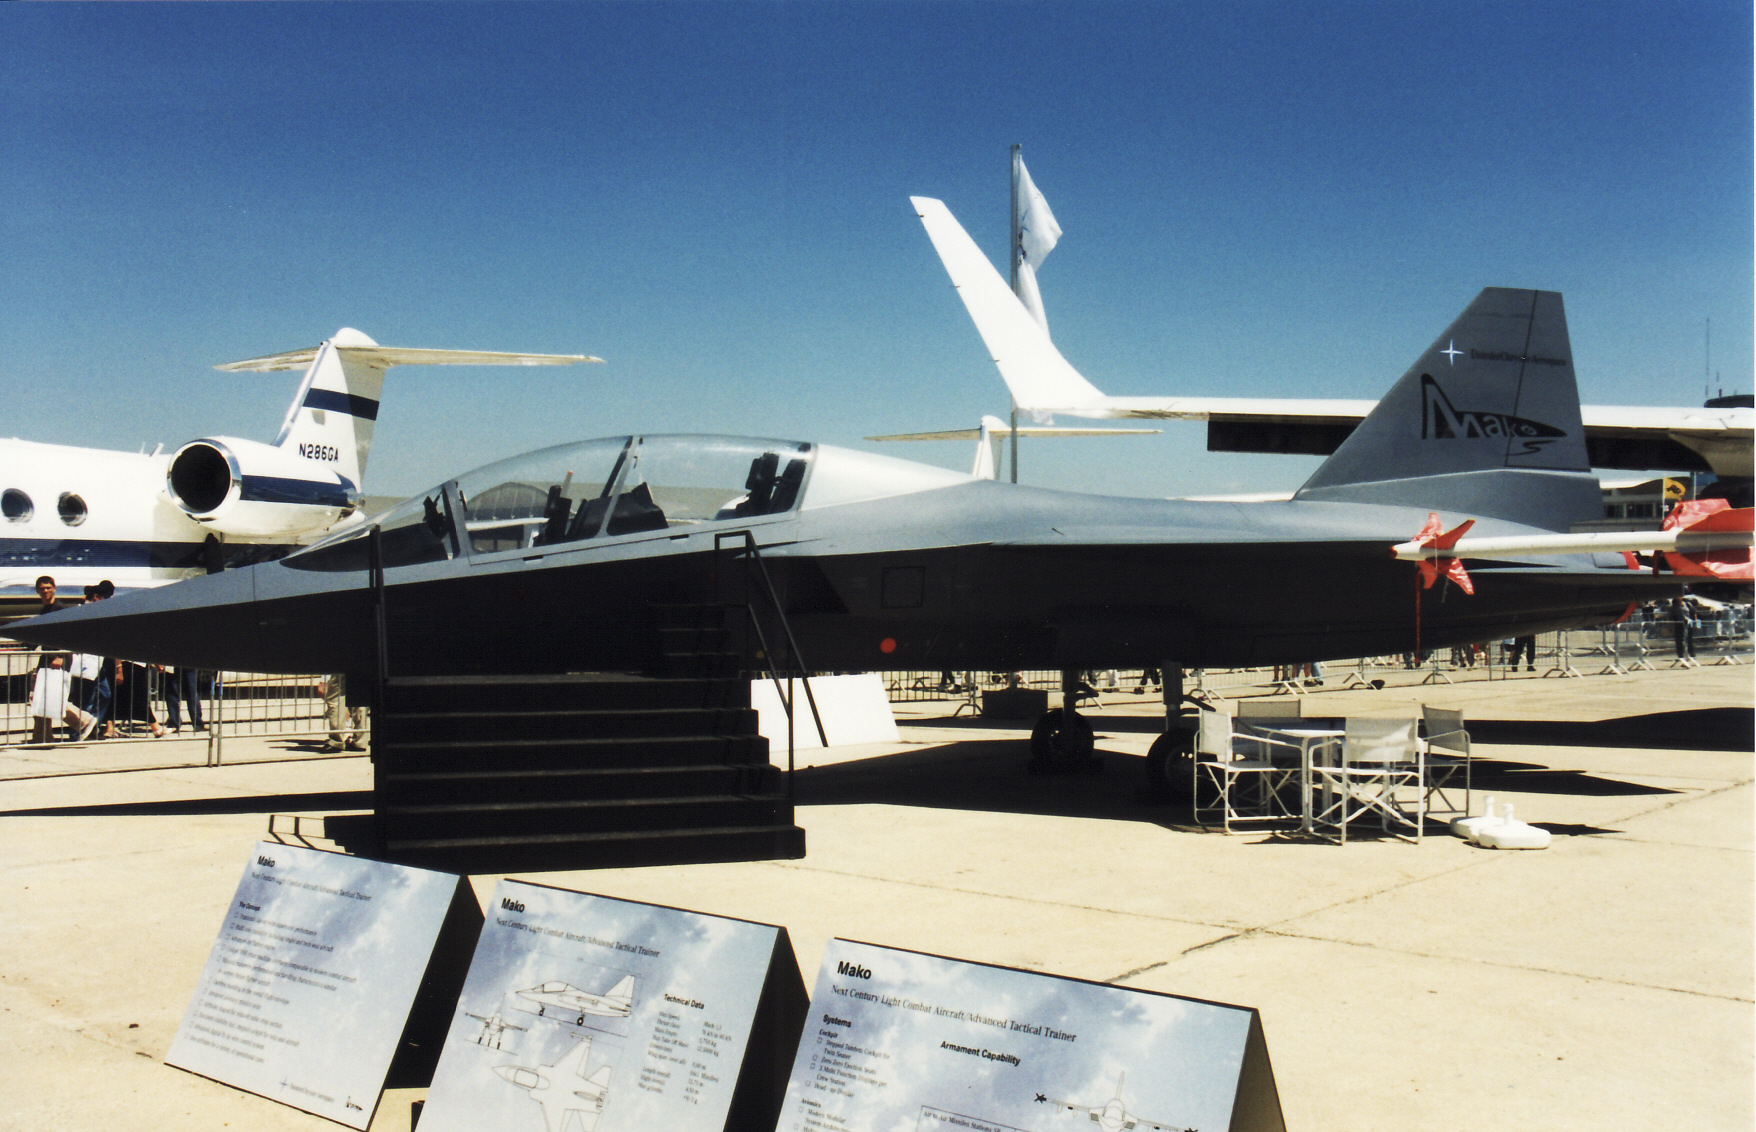 EADS_Mako_jet_trainer_mockup_at_Paris_Ai